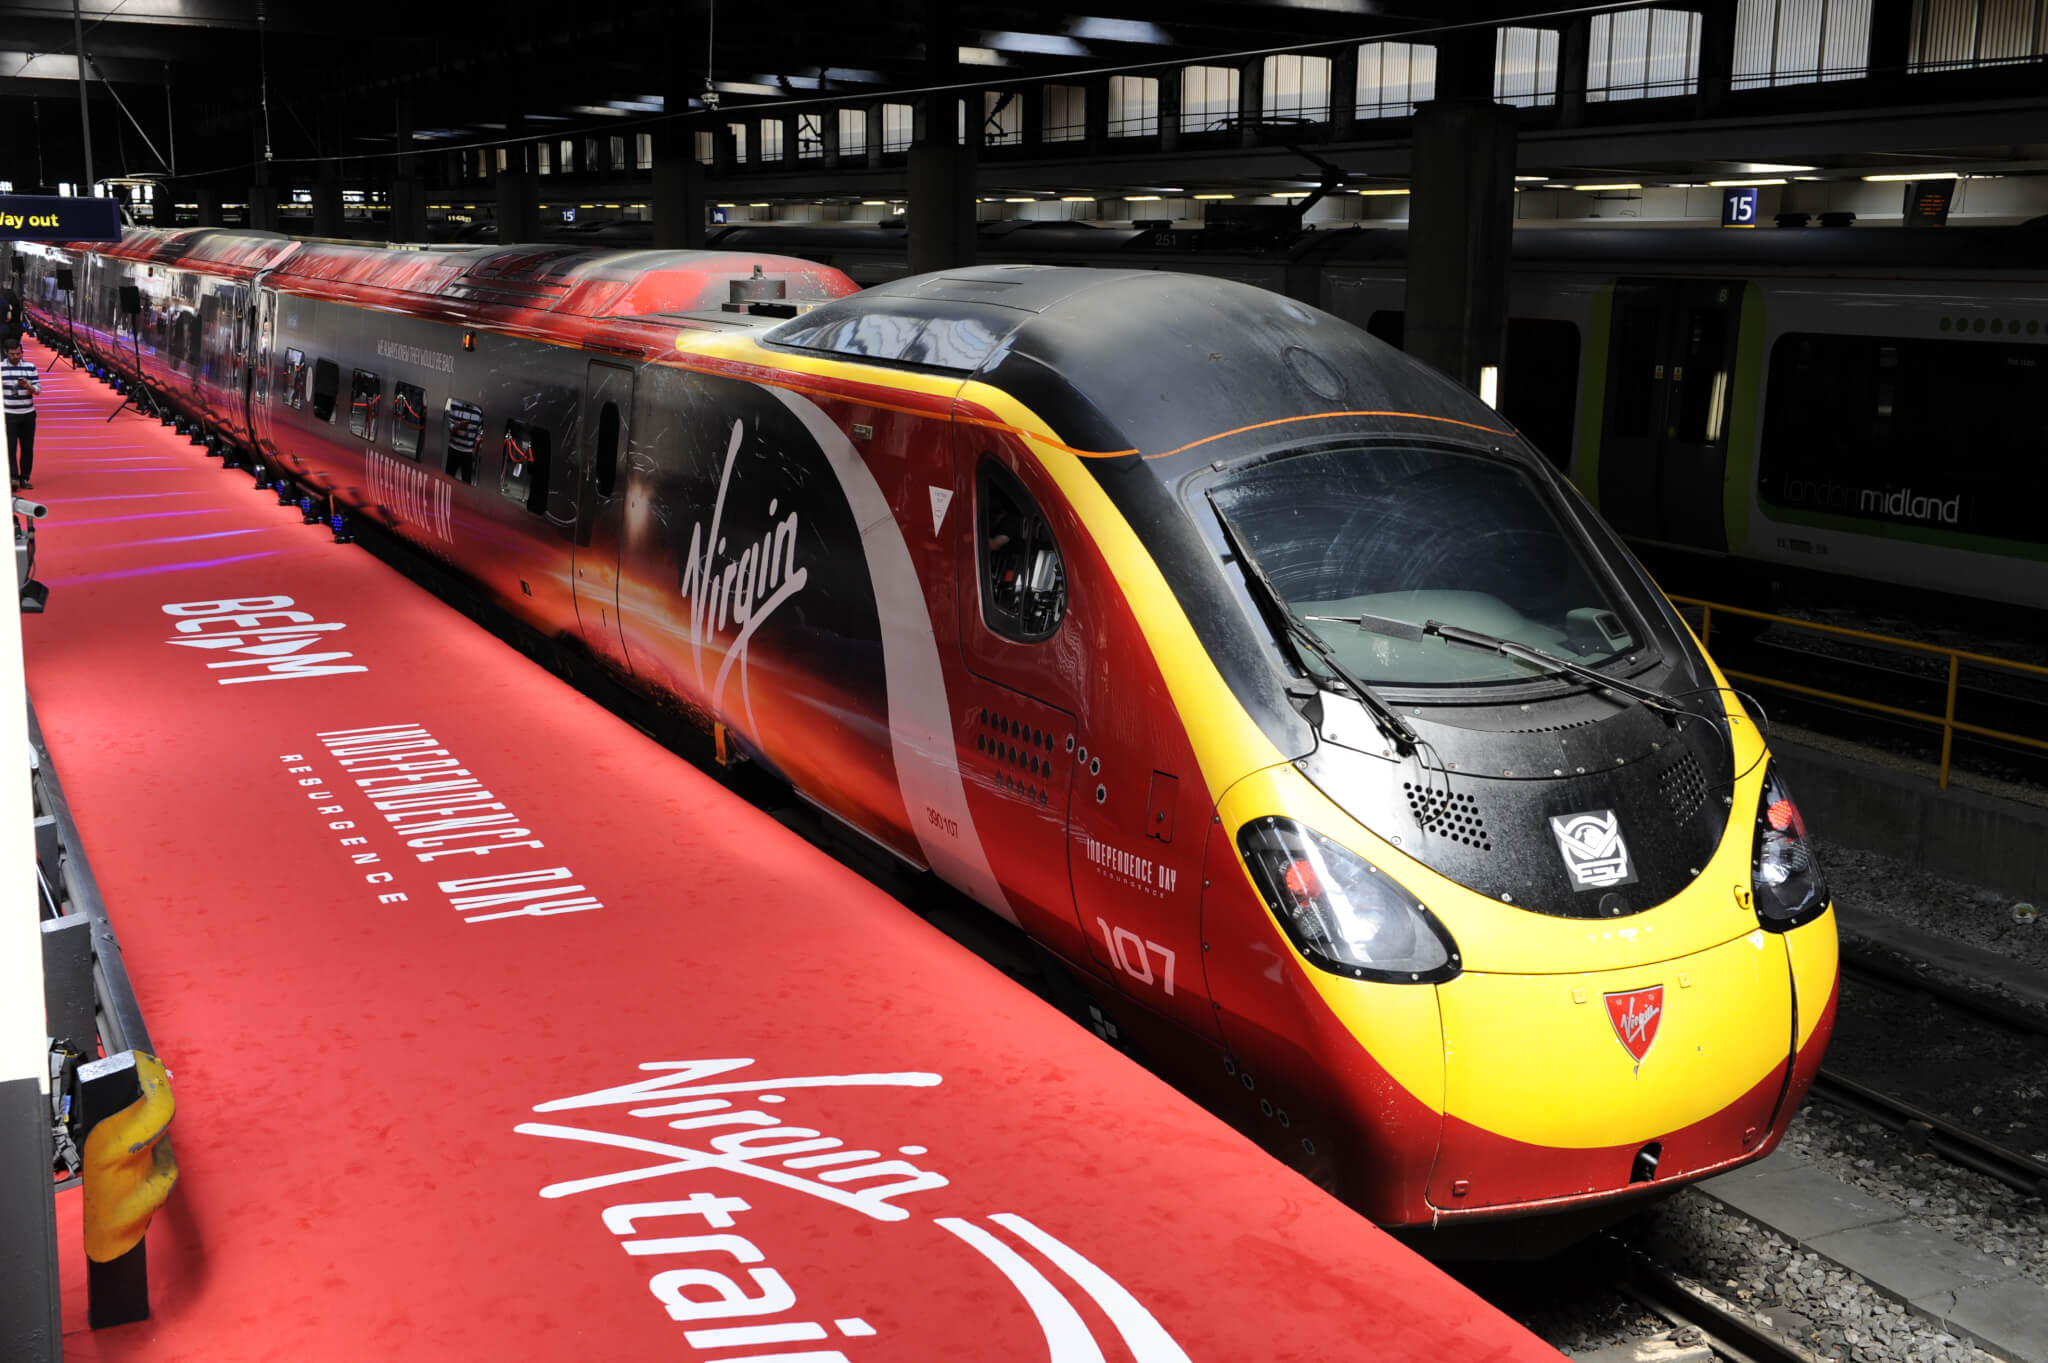 Wifi Service Provider >> Railway News | GoMedia and Virgin Trains Deploy BEAM On ...